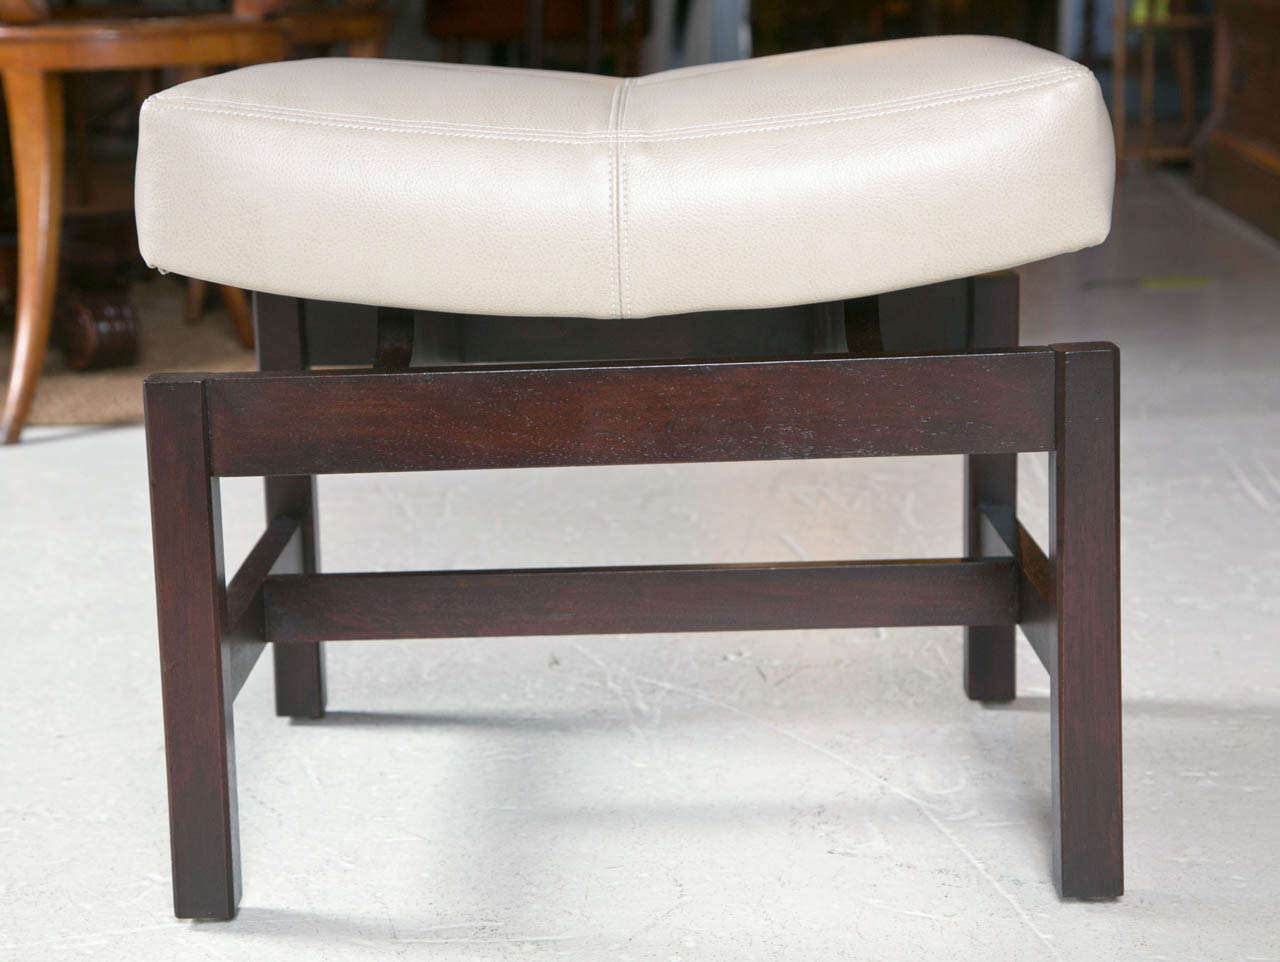 Jens risom floating bench for sale at 1stdibs - Jens Risom Floating Bench For Sale At 1stdibs Jens Risom Bench With Floating Saddle Seat